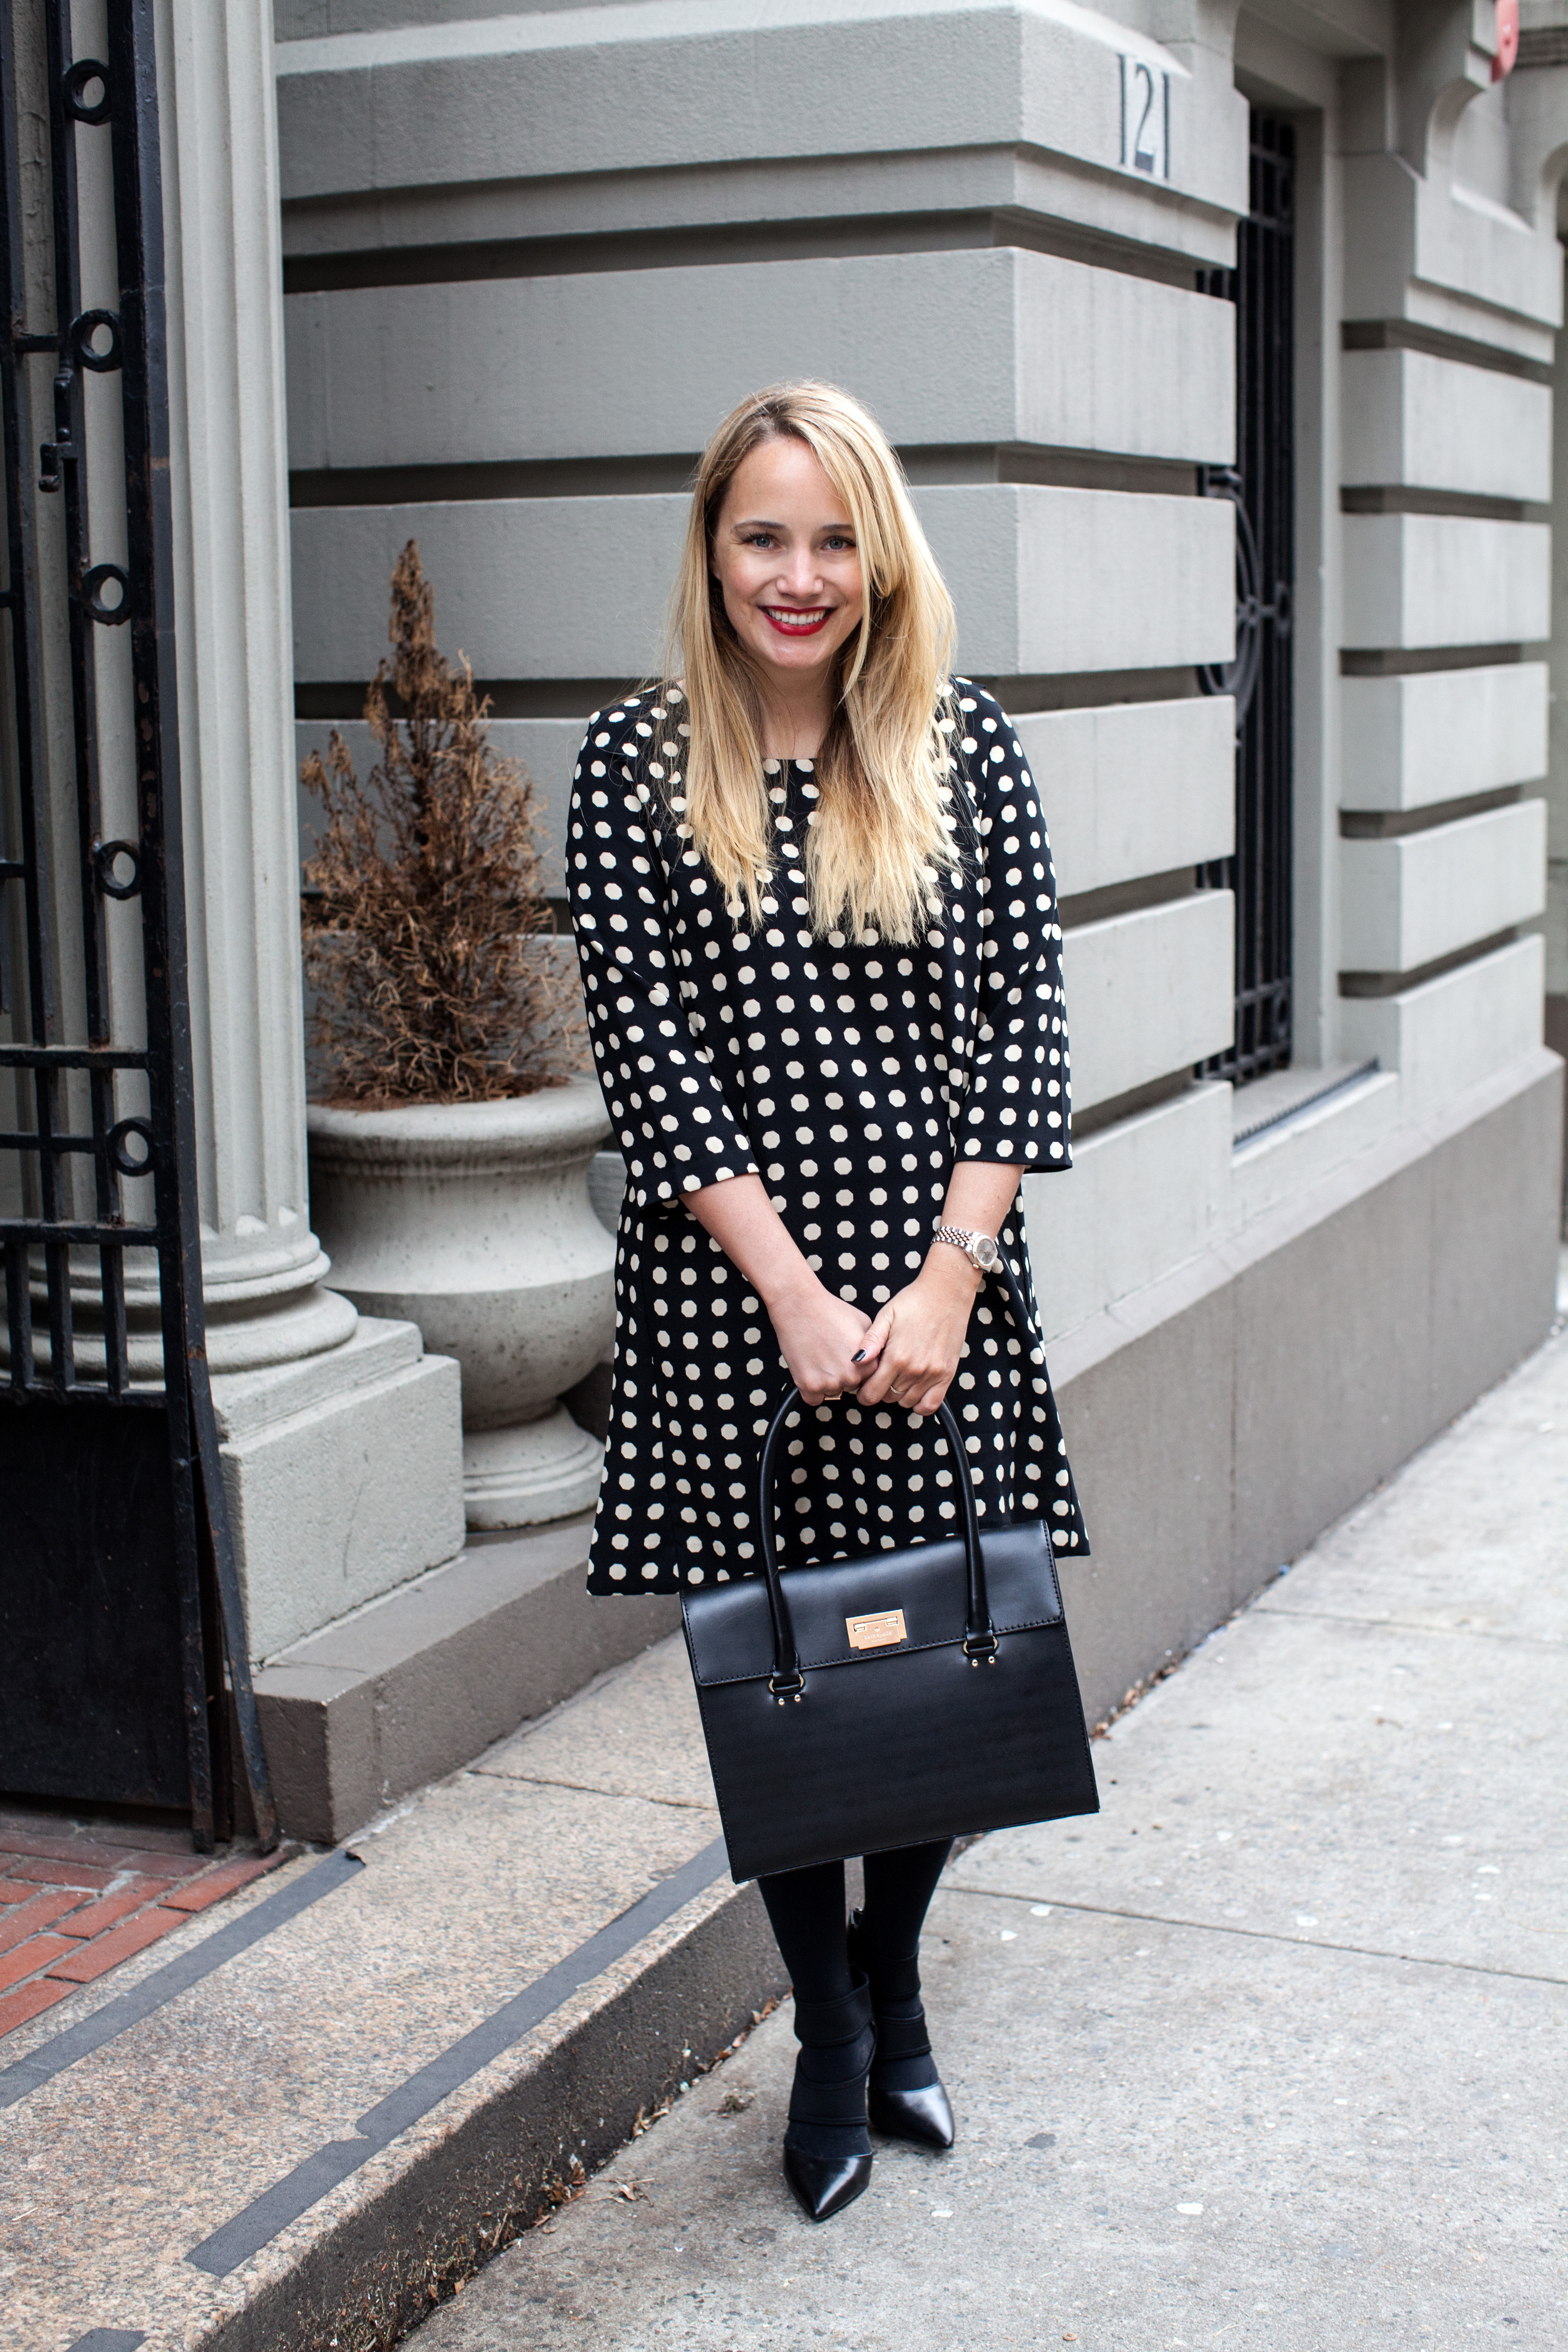 Blogger Crush: Grace Atwood of The Stripe